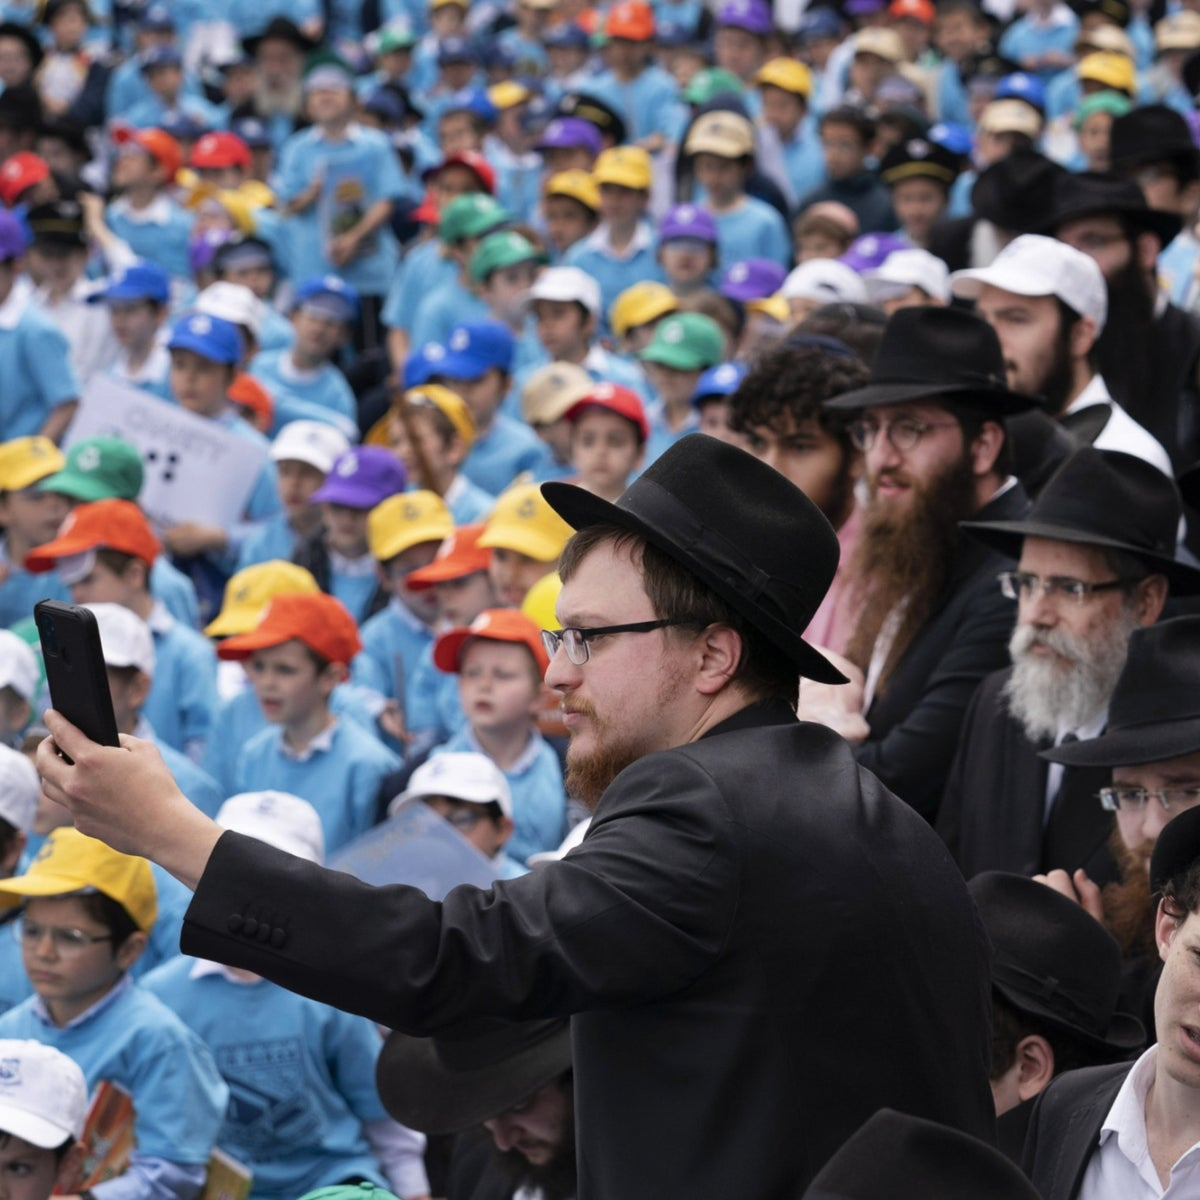 Hundreds of Orthodox men and boys attending a Lag Ba'omer holiday celebration in front of the Chabad Lubavitch World Headquarters in New York last month.